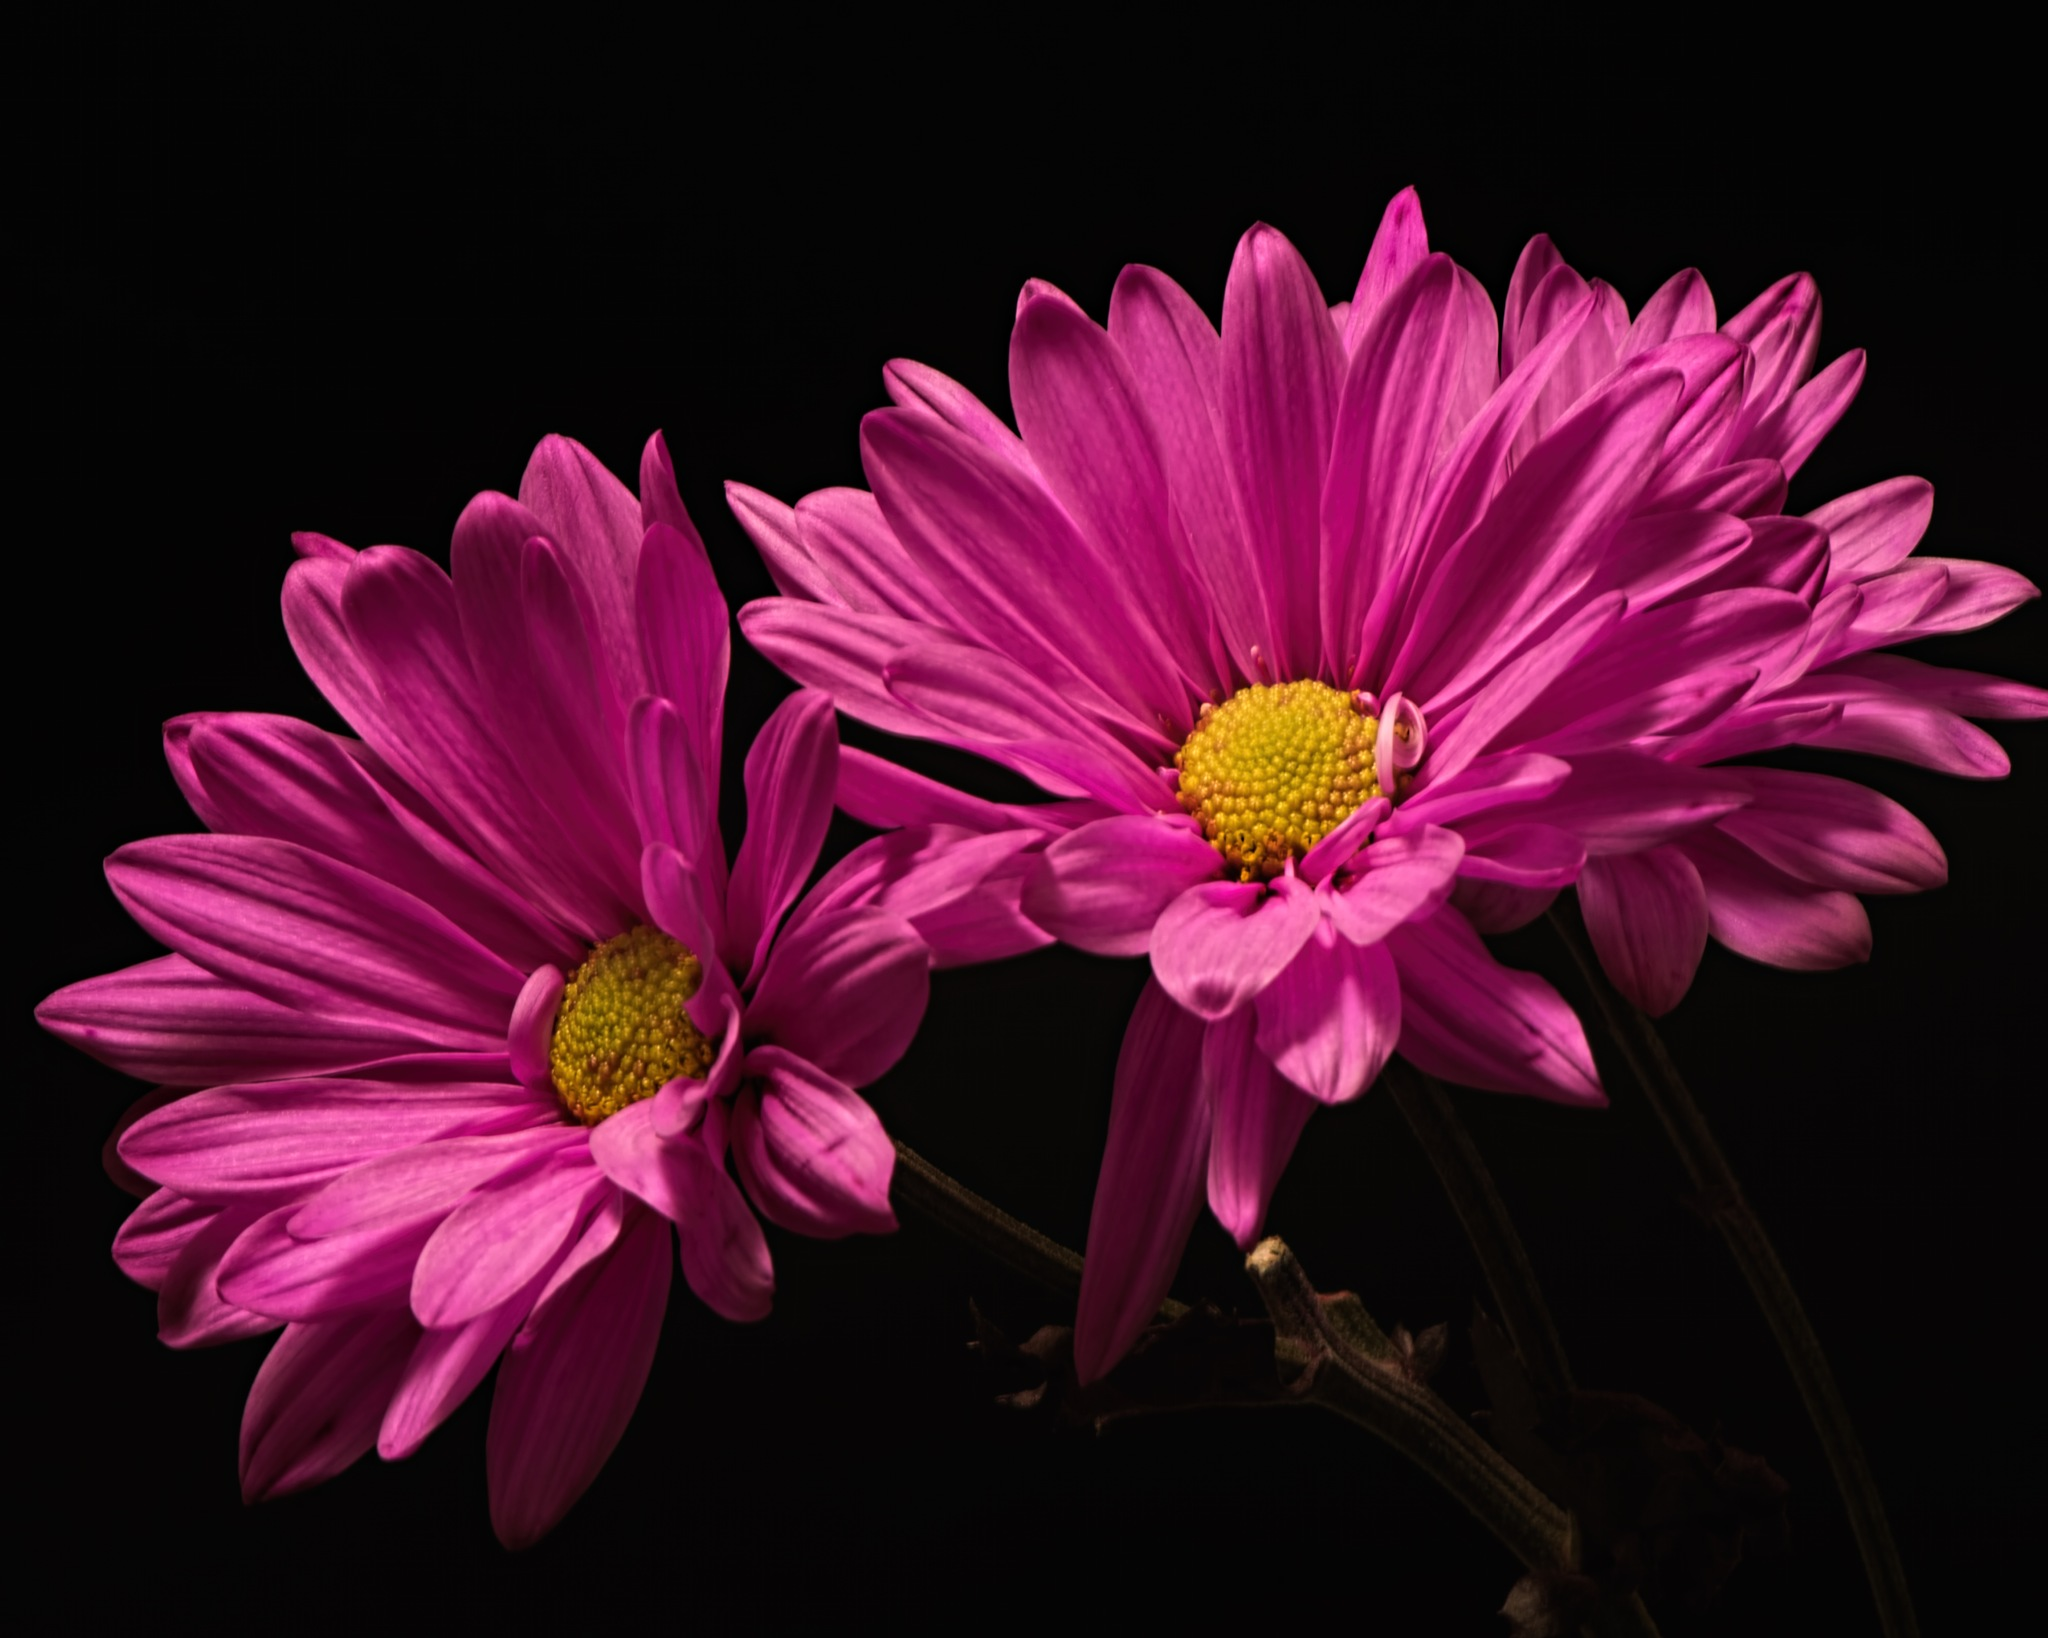 Pink Daisy Pair 0328 by ThomasJerger